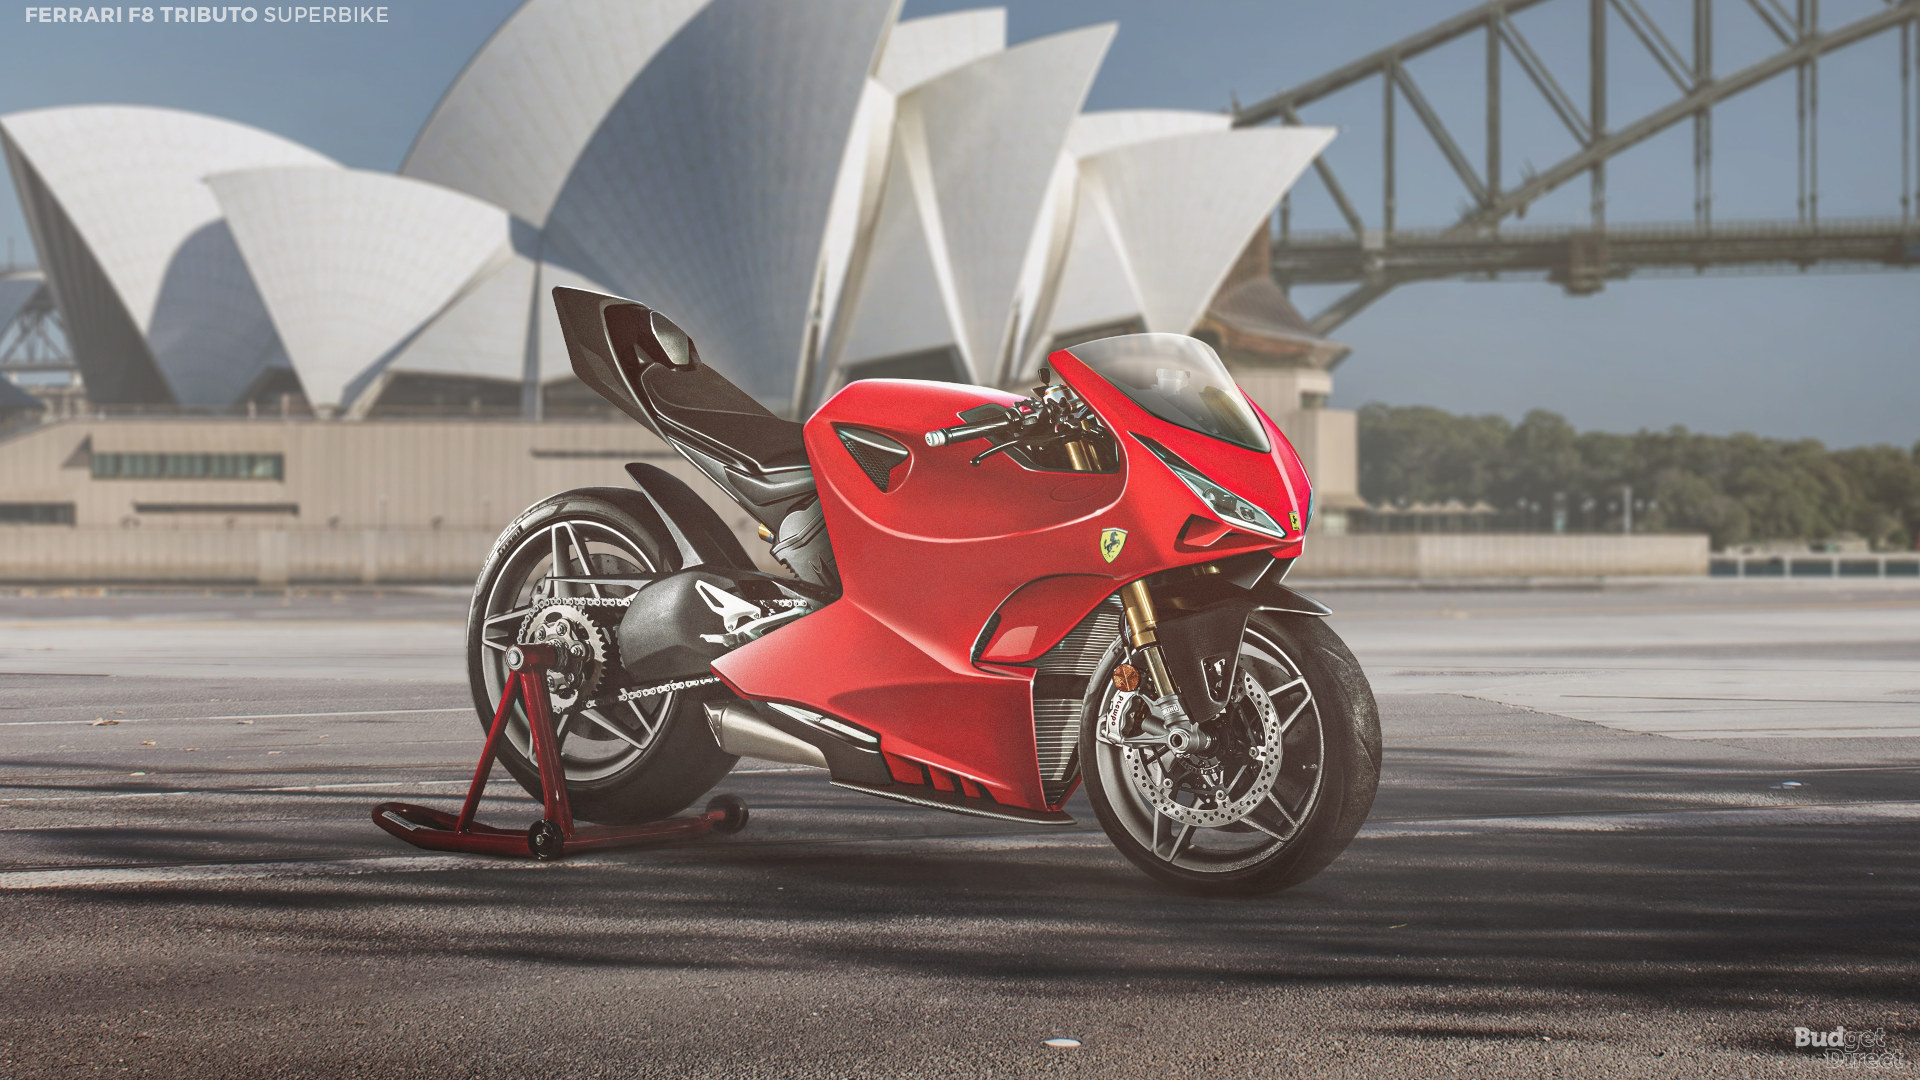 What if supercar brands made superbikes? How about a Ferrari F8 Tributo superbike?